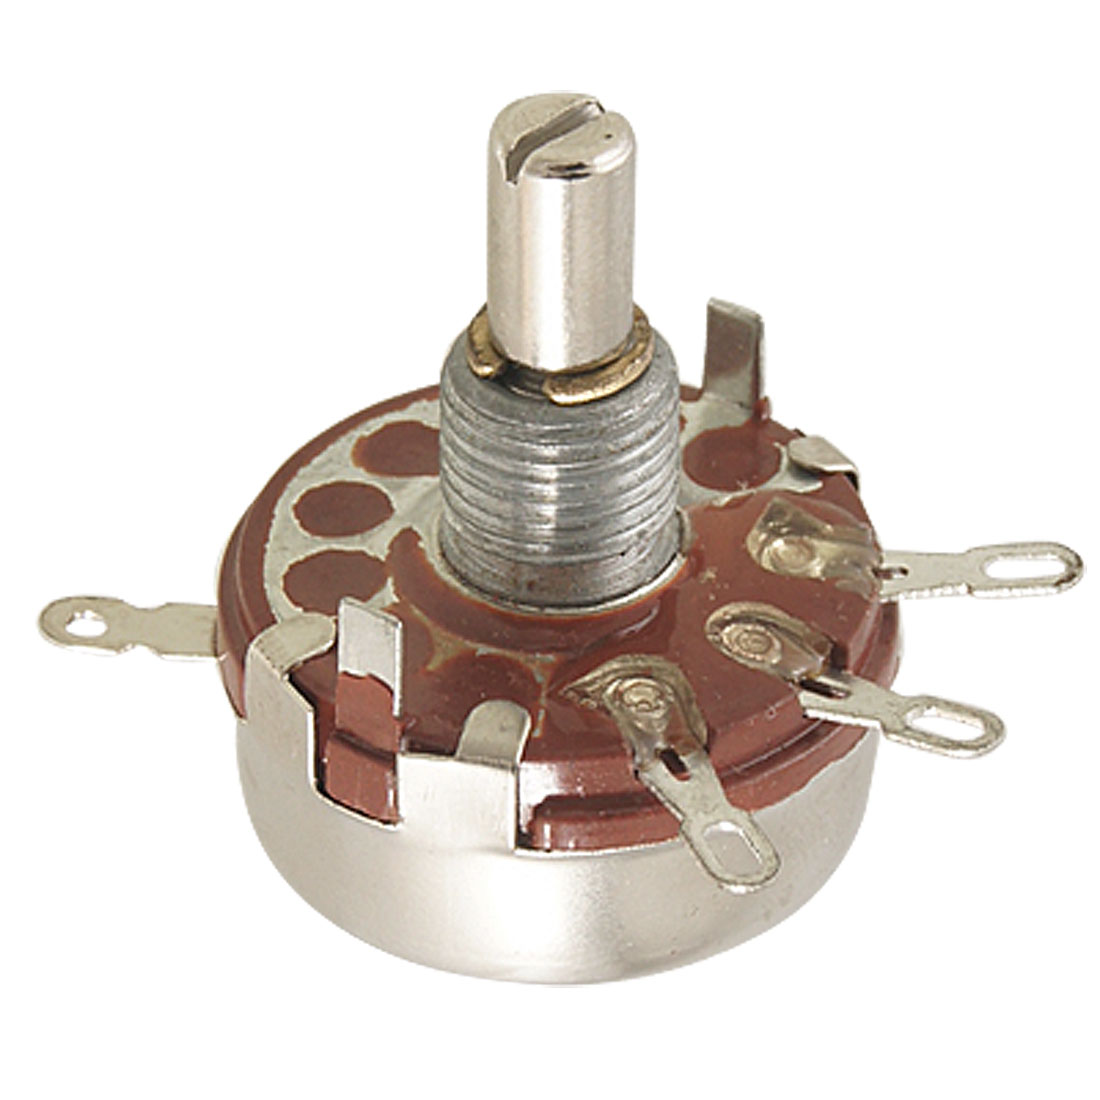 WH118-I 2.2K ohm 2W Carbon Composition Rotary Taper Potentiometer